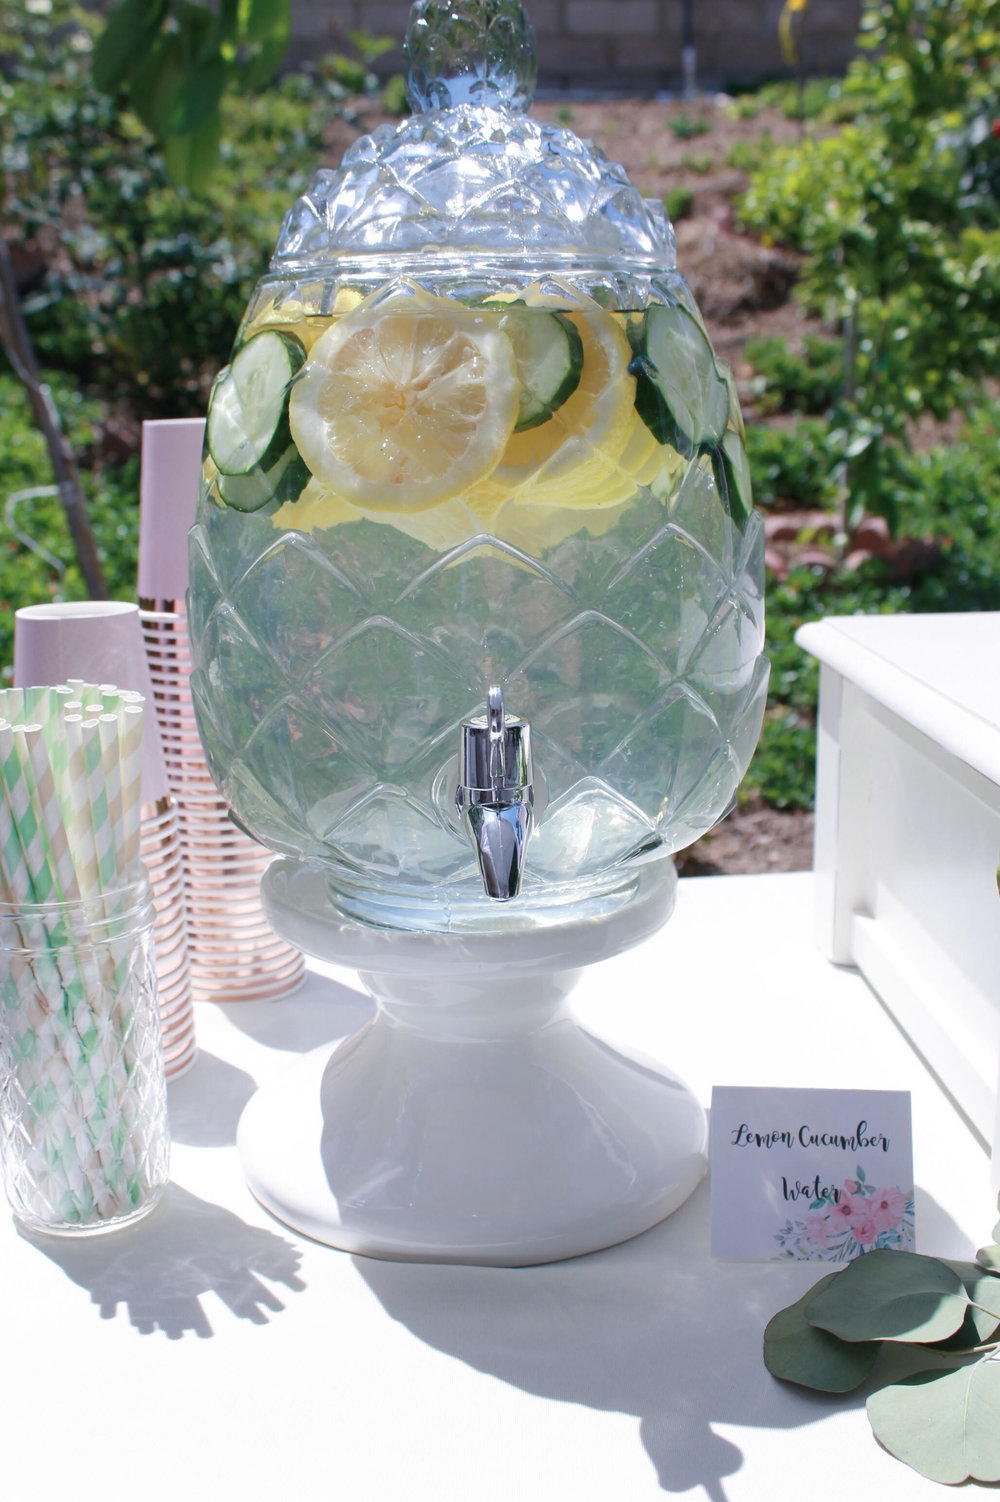 lemon cucumber water-hydration station-bridal shower-www.sugarpartiesla.com.jpg